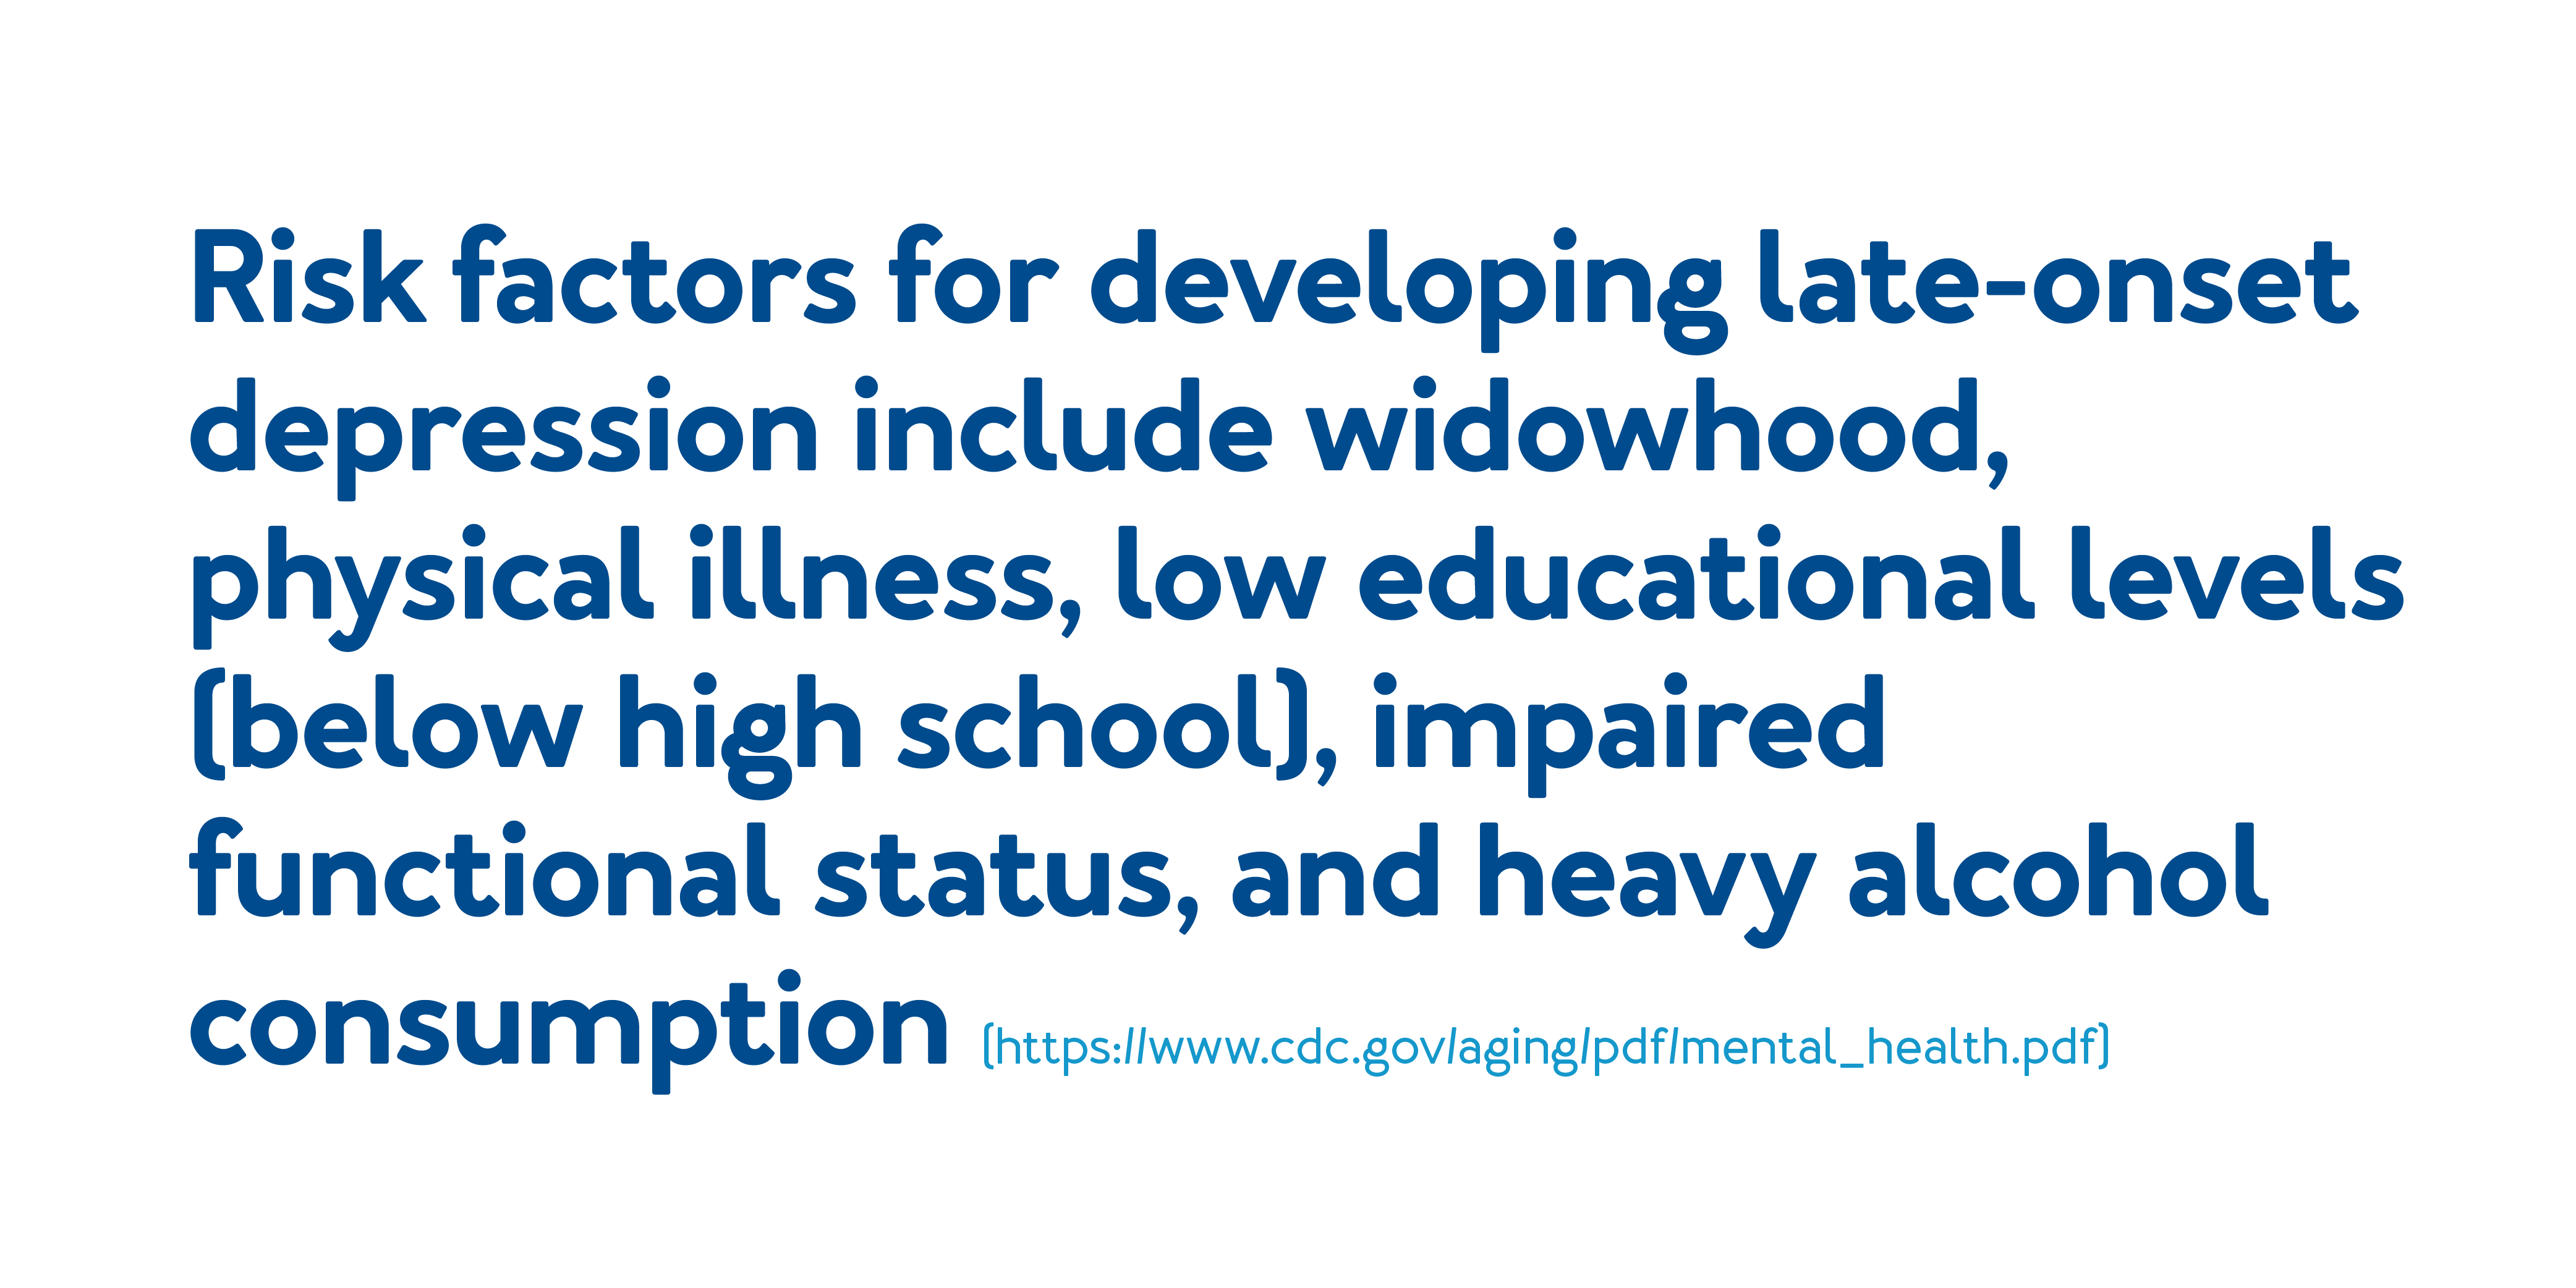 Risk factors for developing late-onset depression include widowhood, physical illness, low educational levels (below high school), impaired functional status, and heavy alcohol consumption.